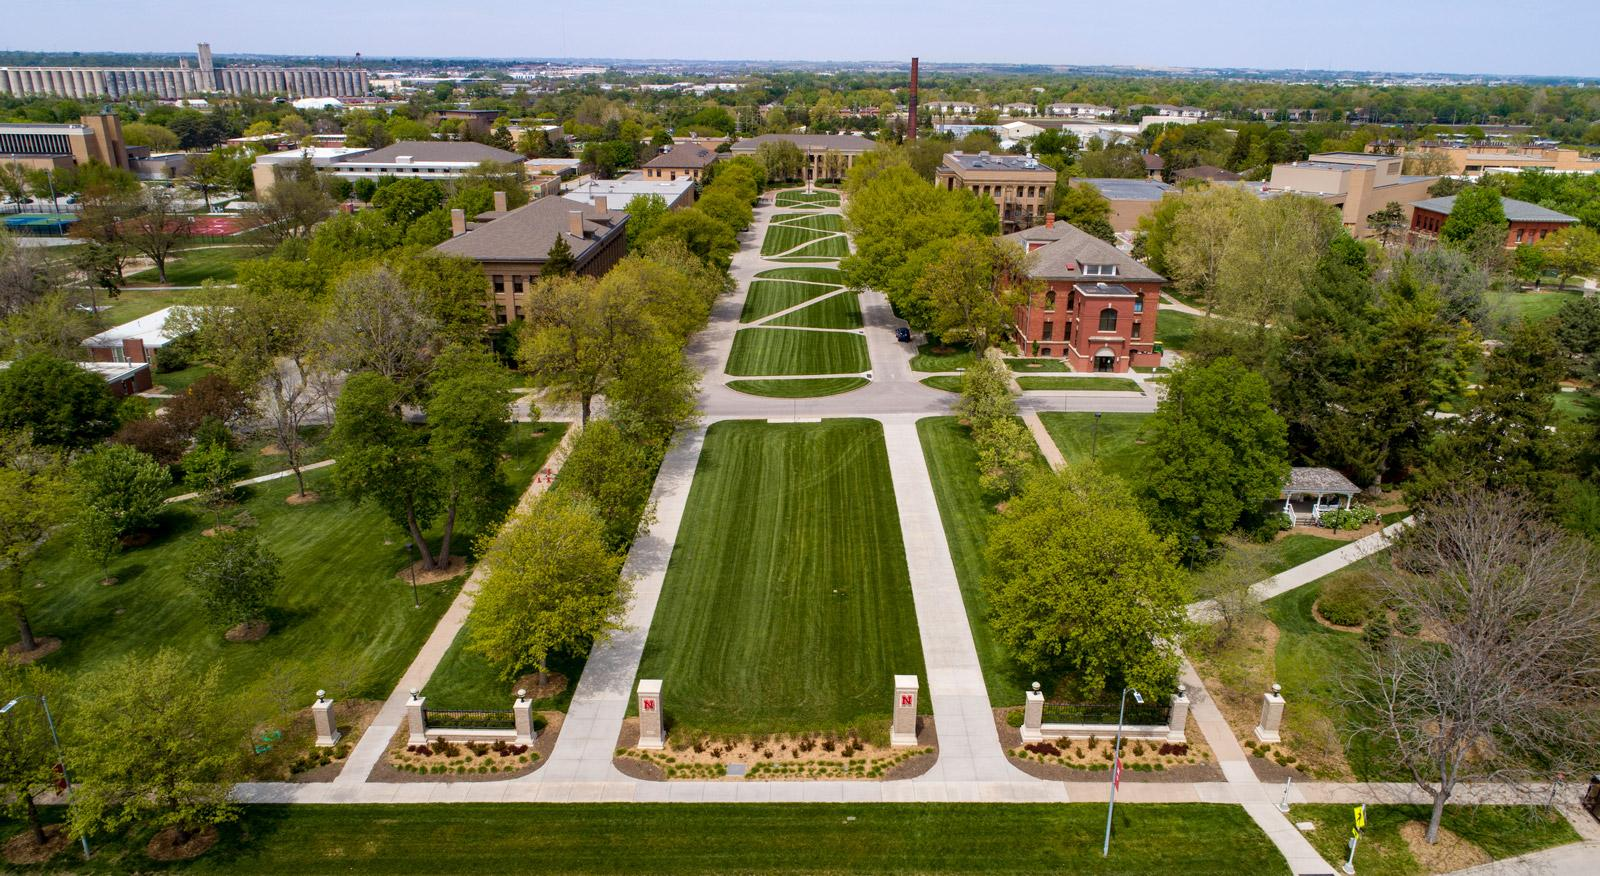 East Campus Mall Aerial Photo